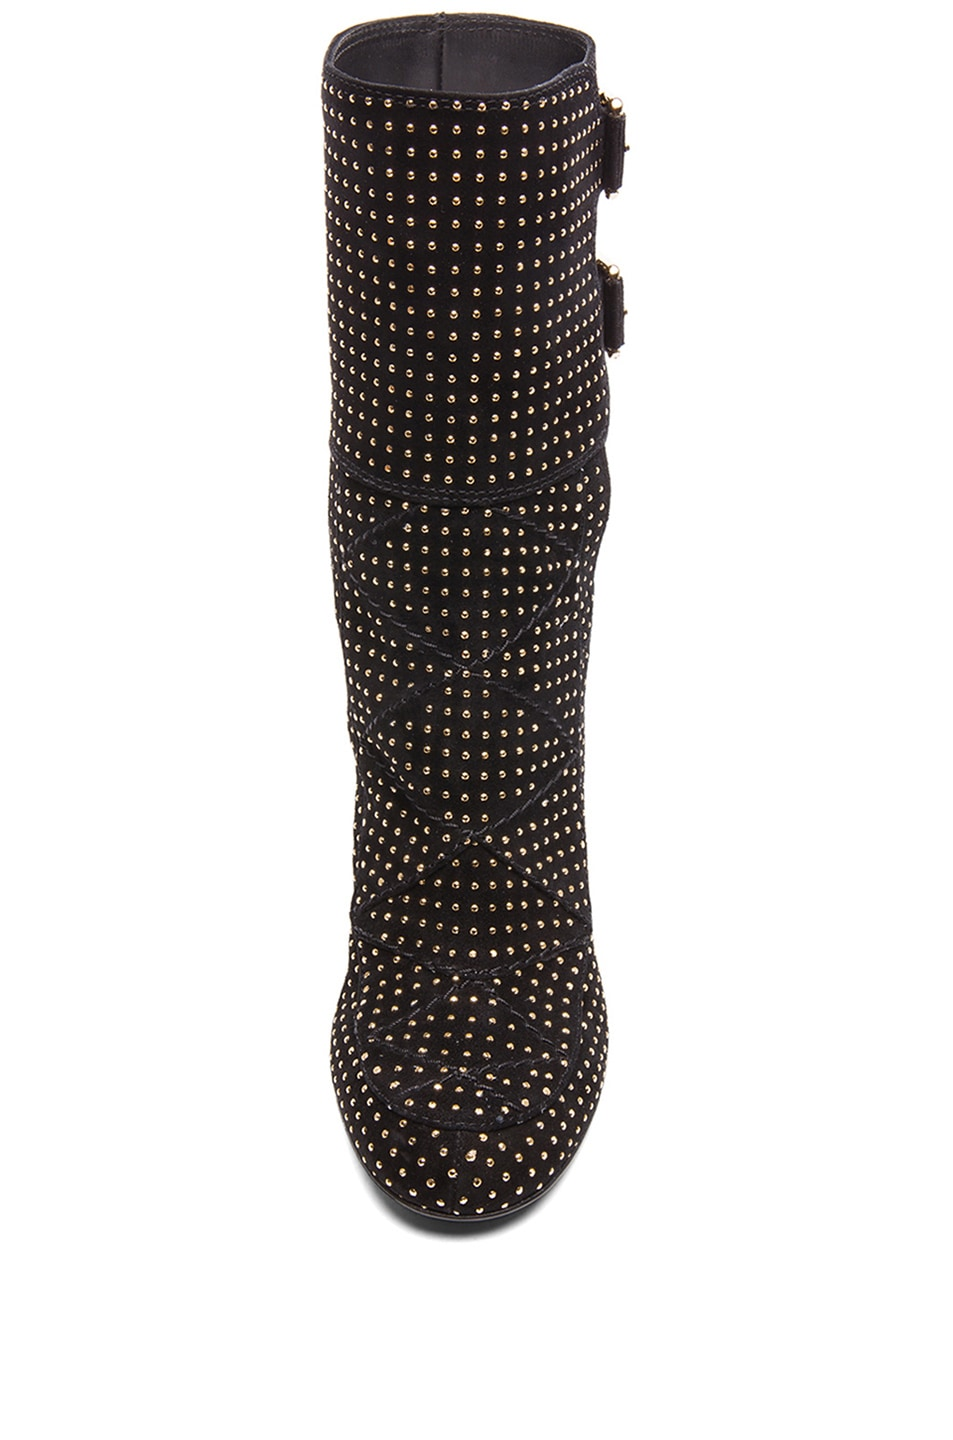 Image 4 of Laurence Dacade Merli Suede Studded Boots in Black & Gold